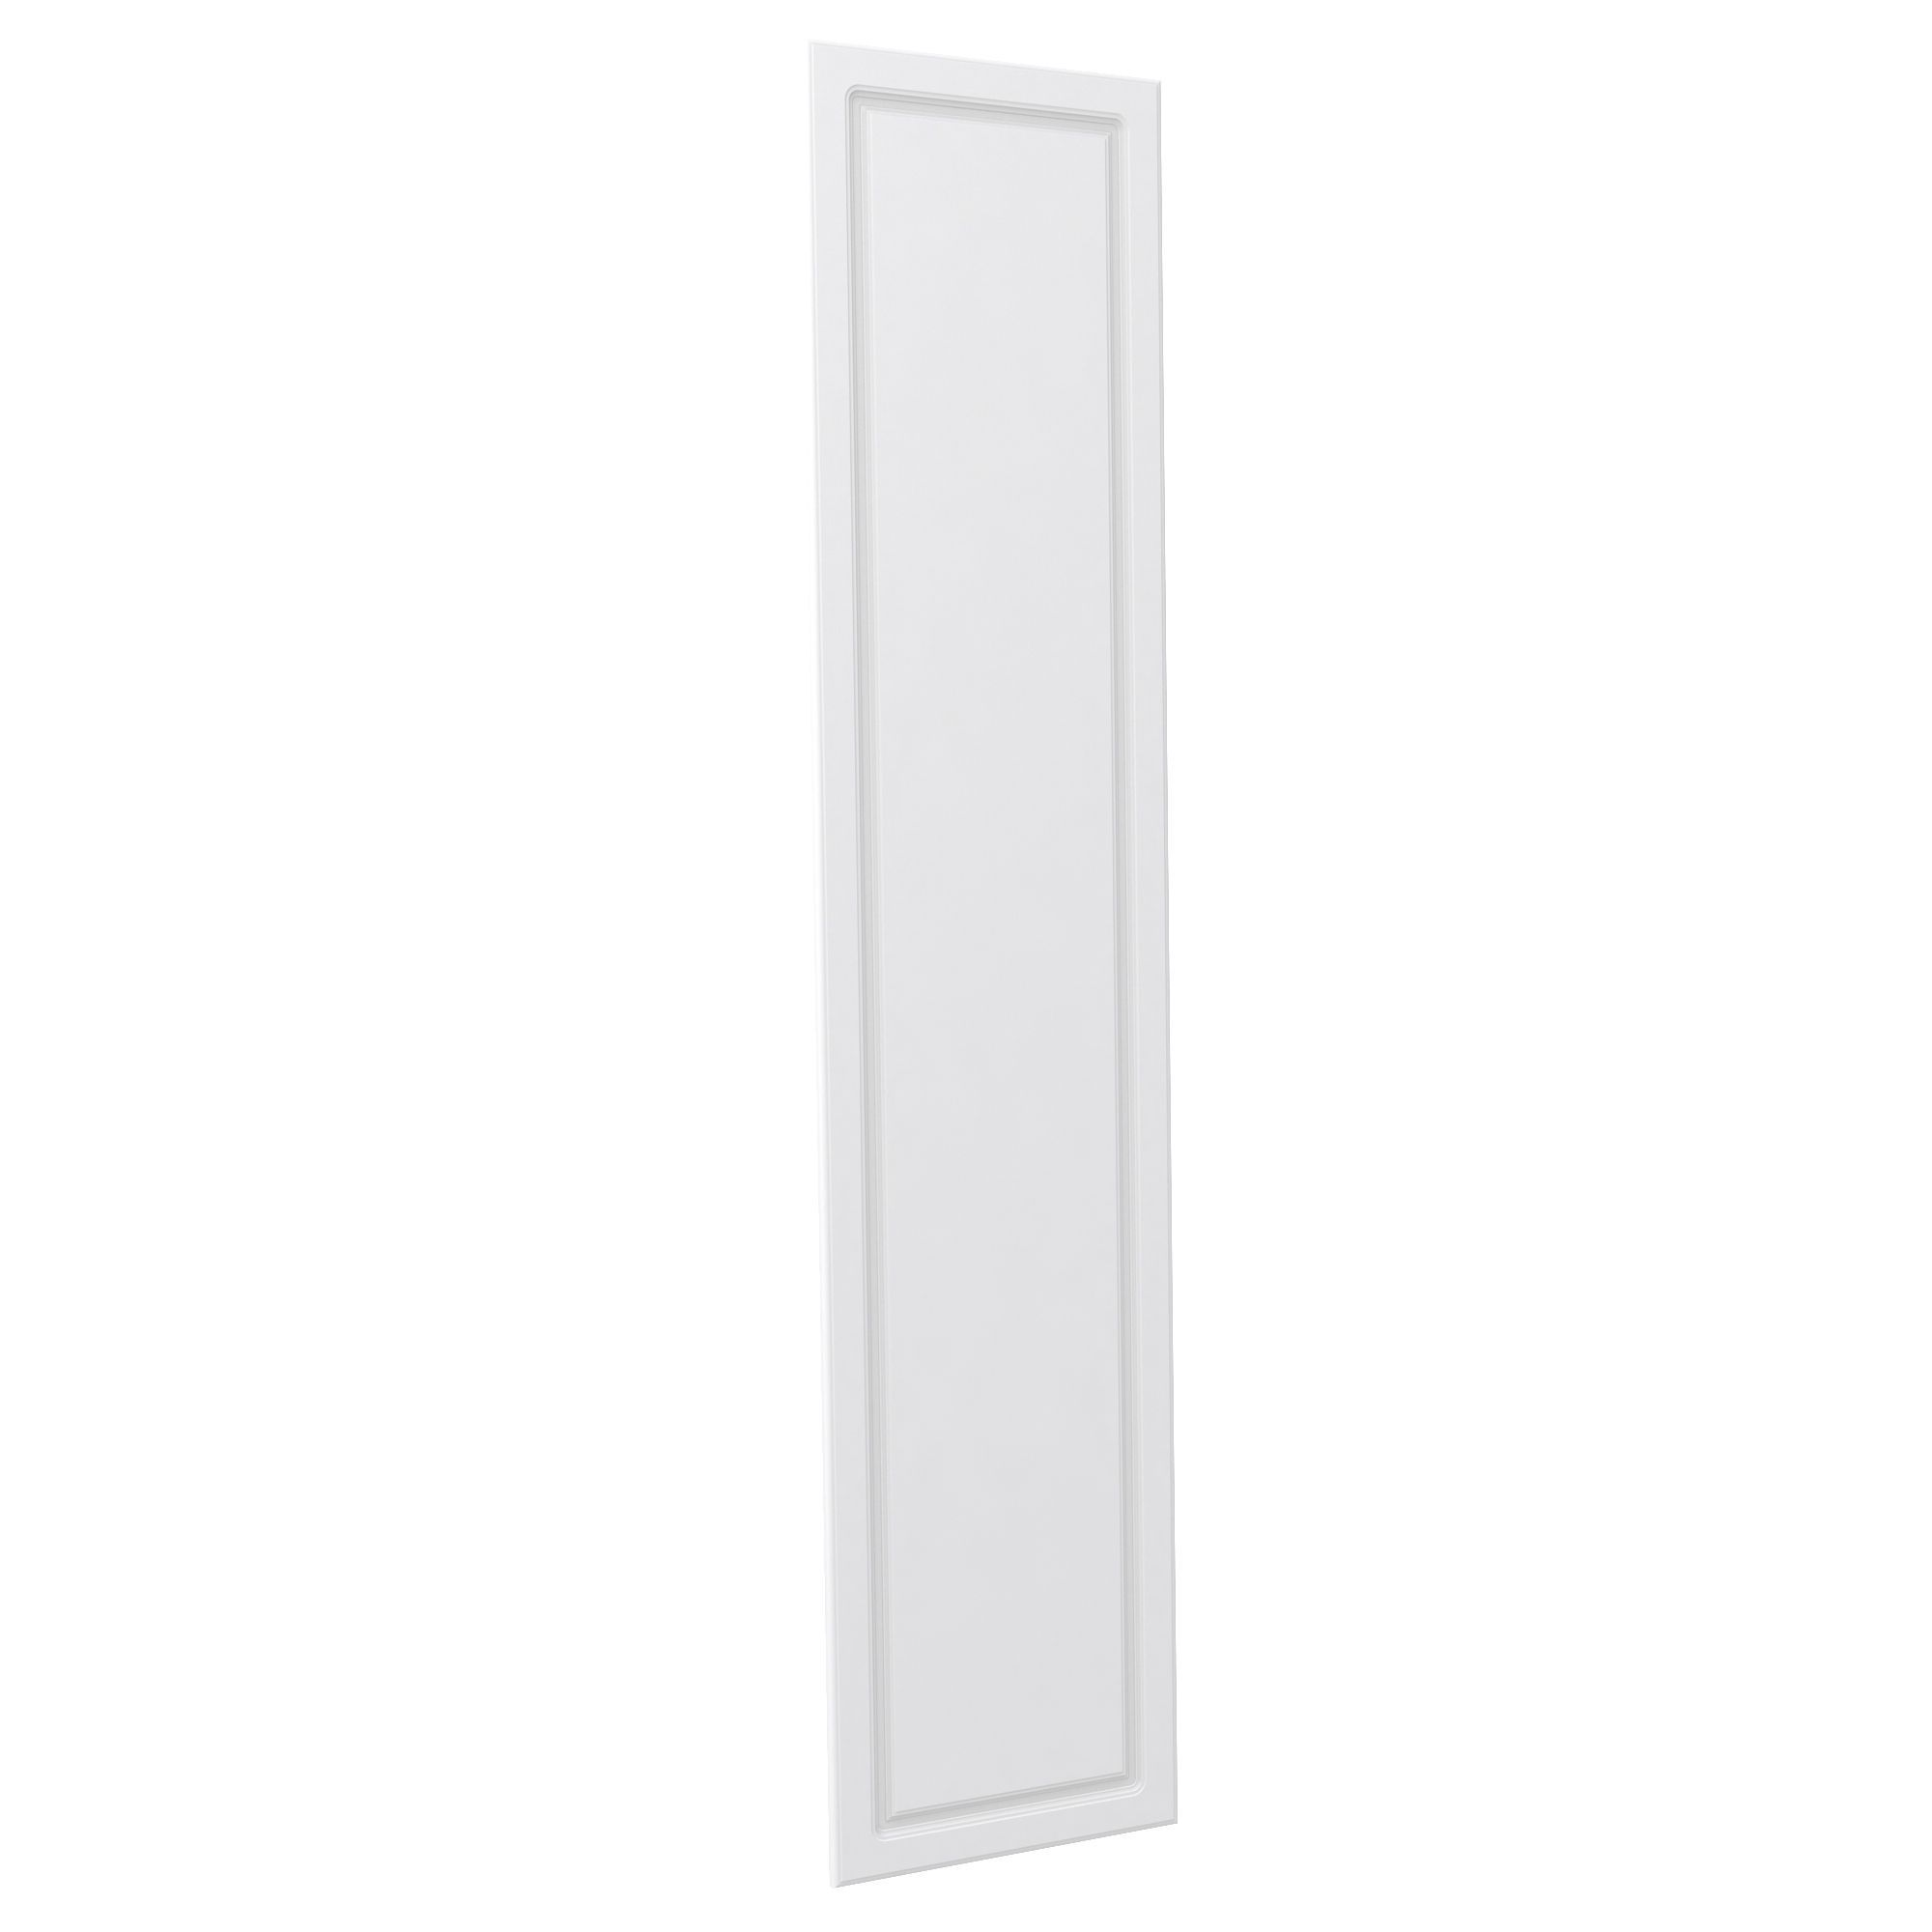 Darwin Modular White Large Wardrobe Door (h)2280mm (w)497mm